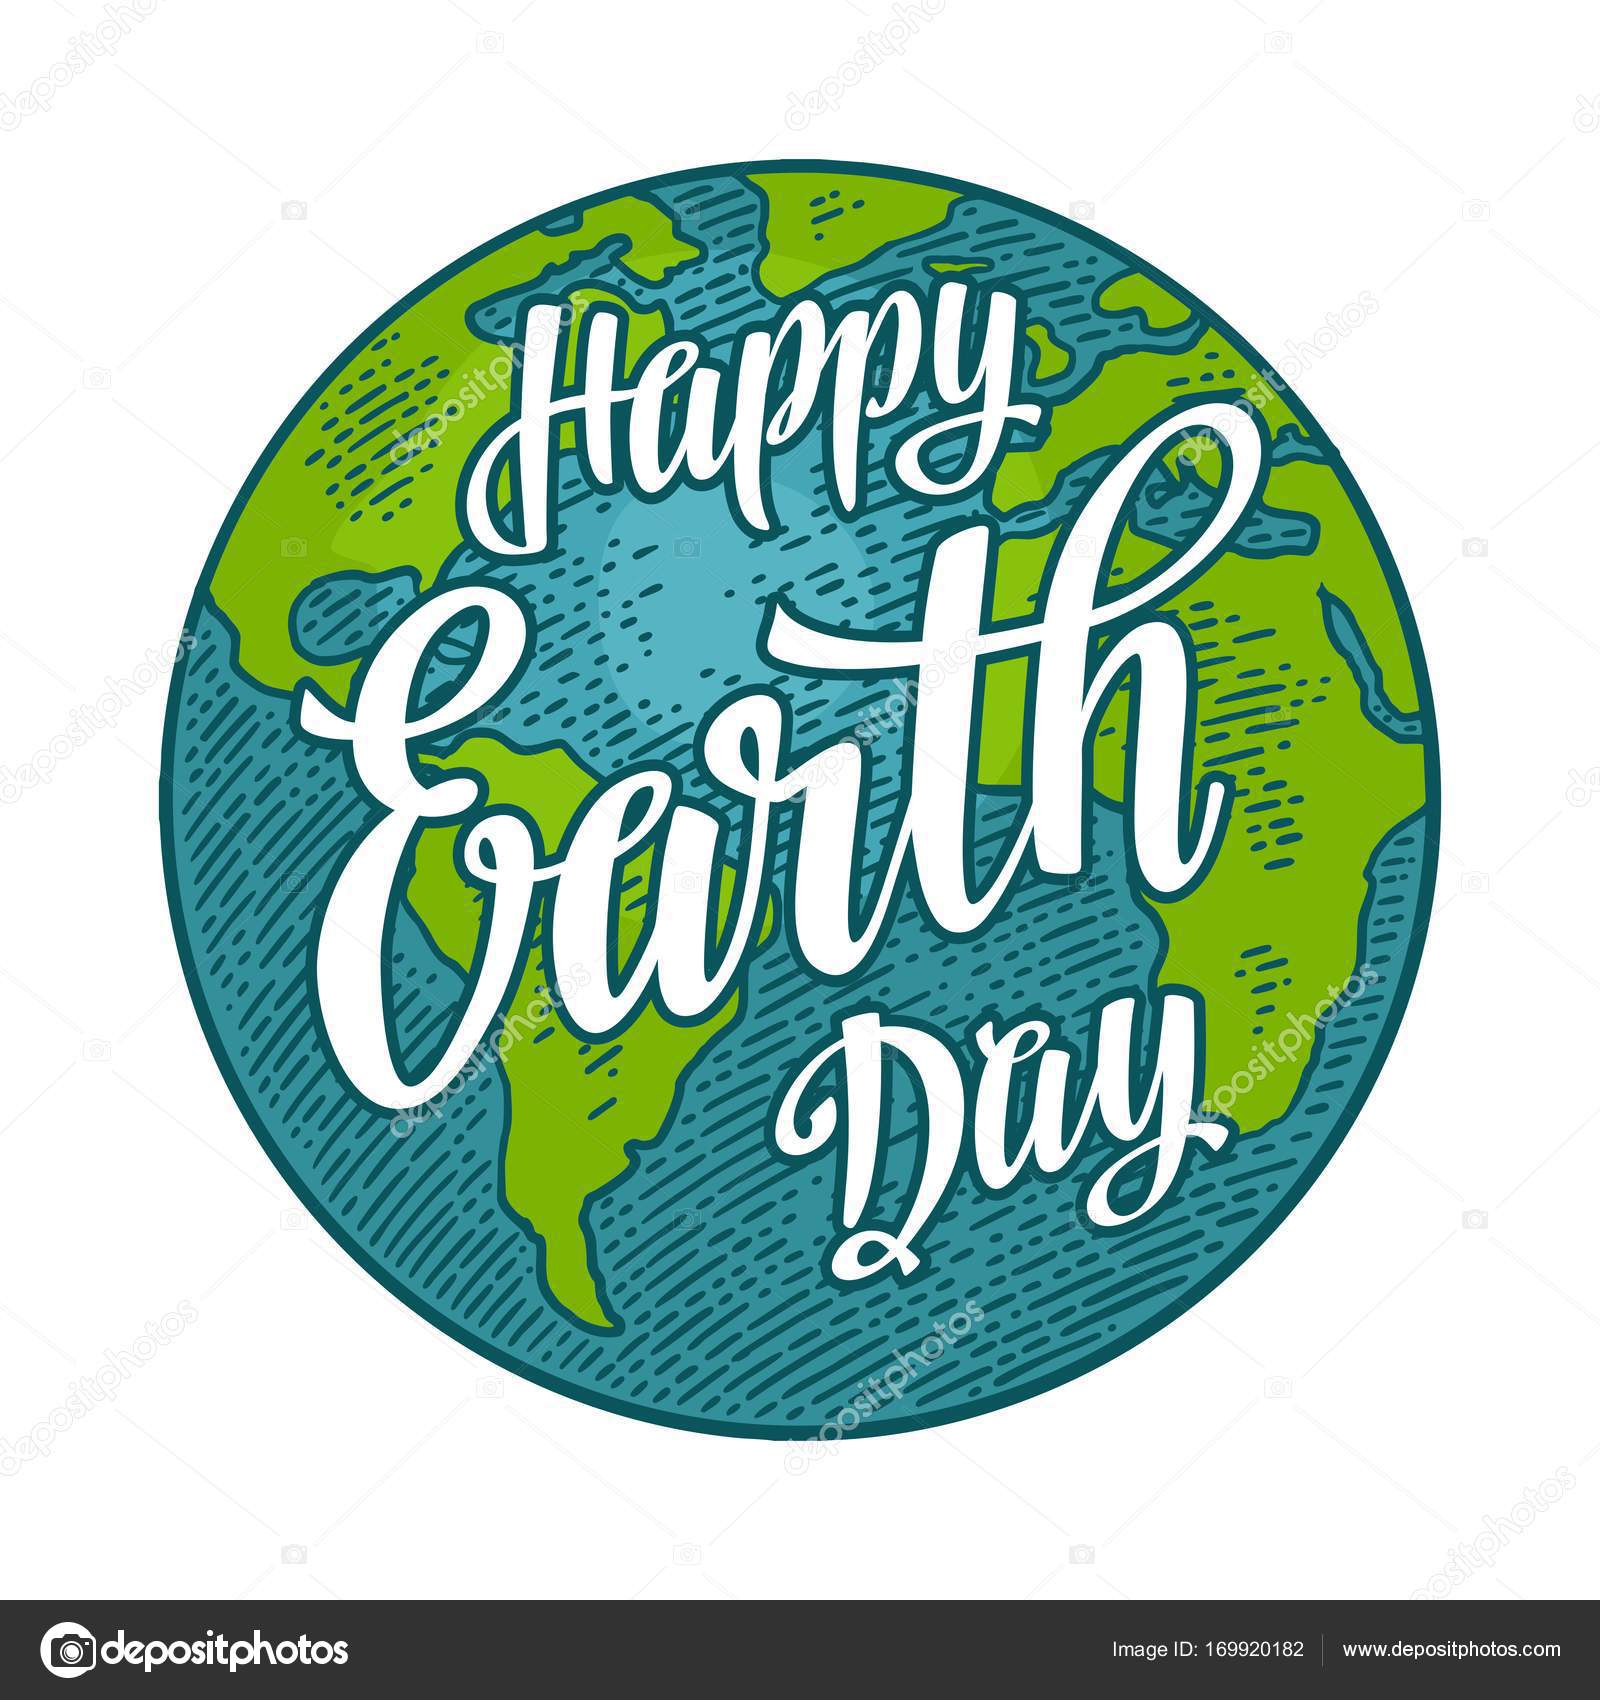 Happy Earth Day Images planet. happy earth day lettering. vector color vintage engraving